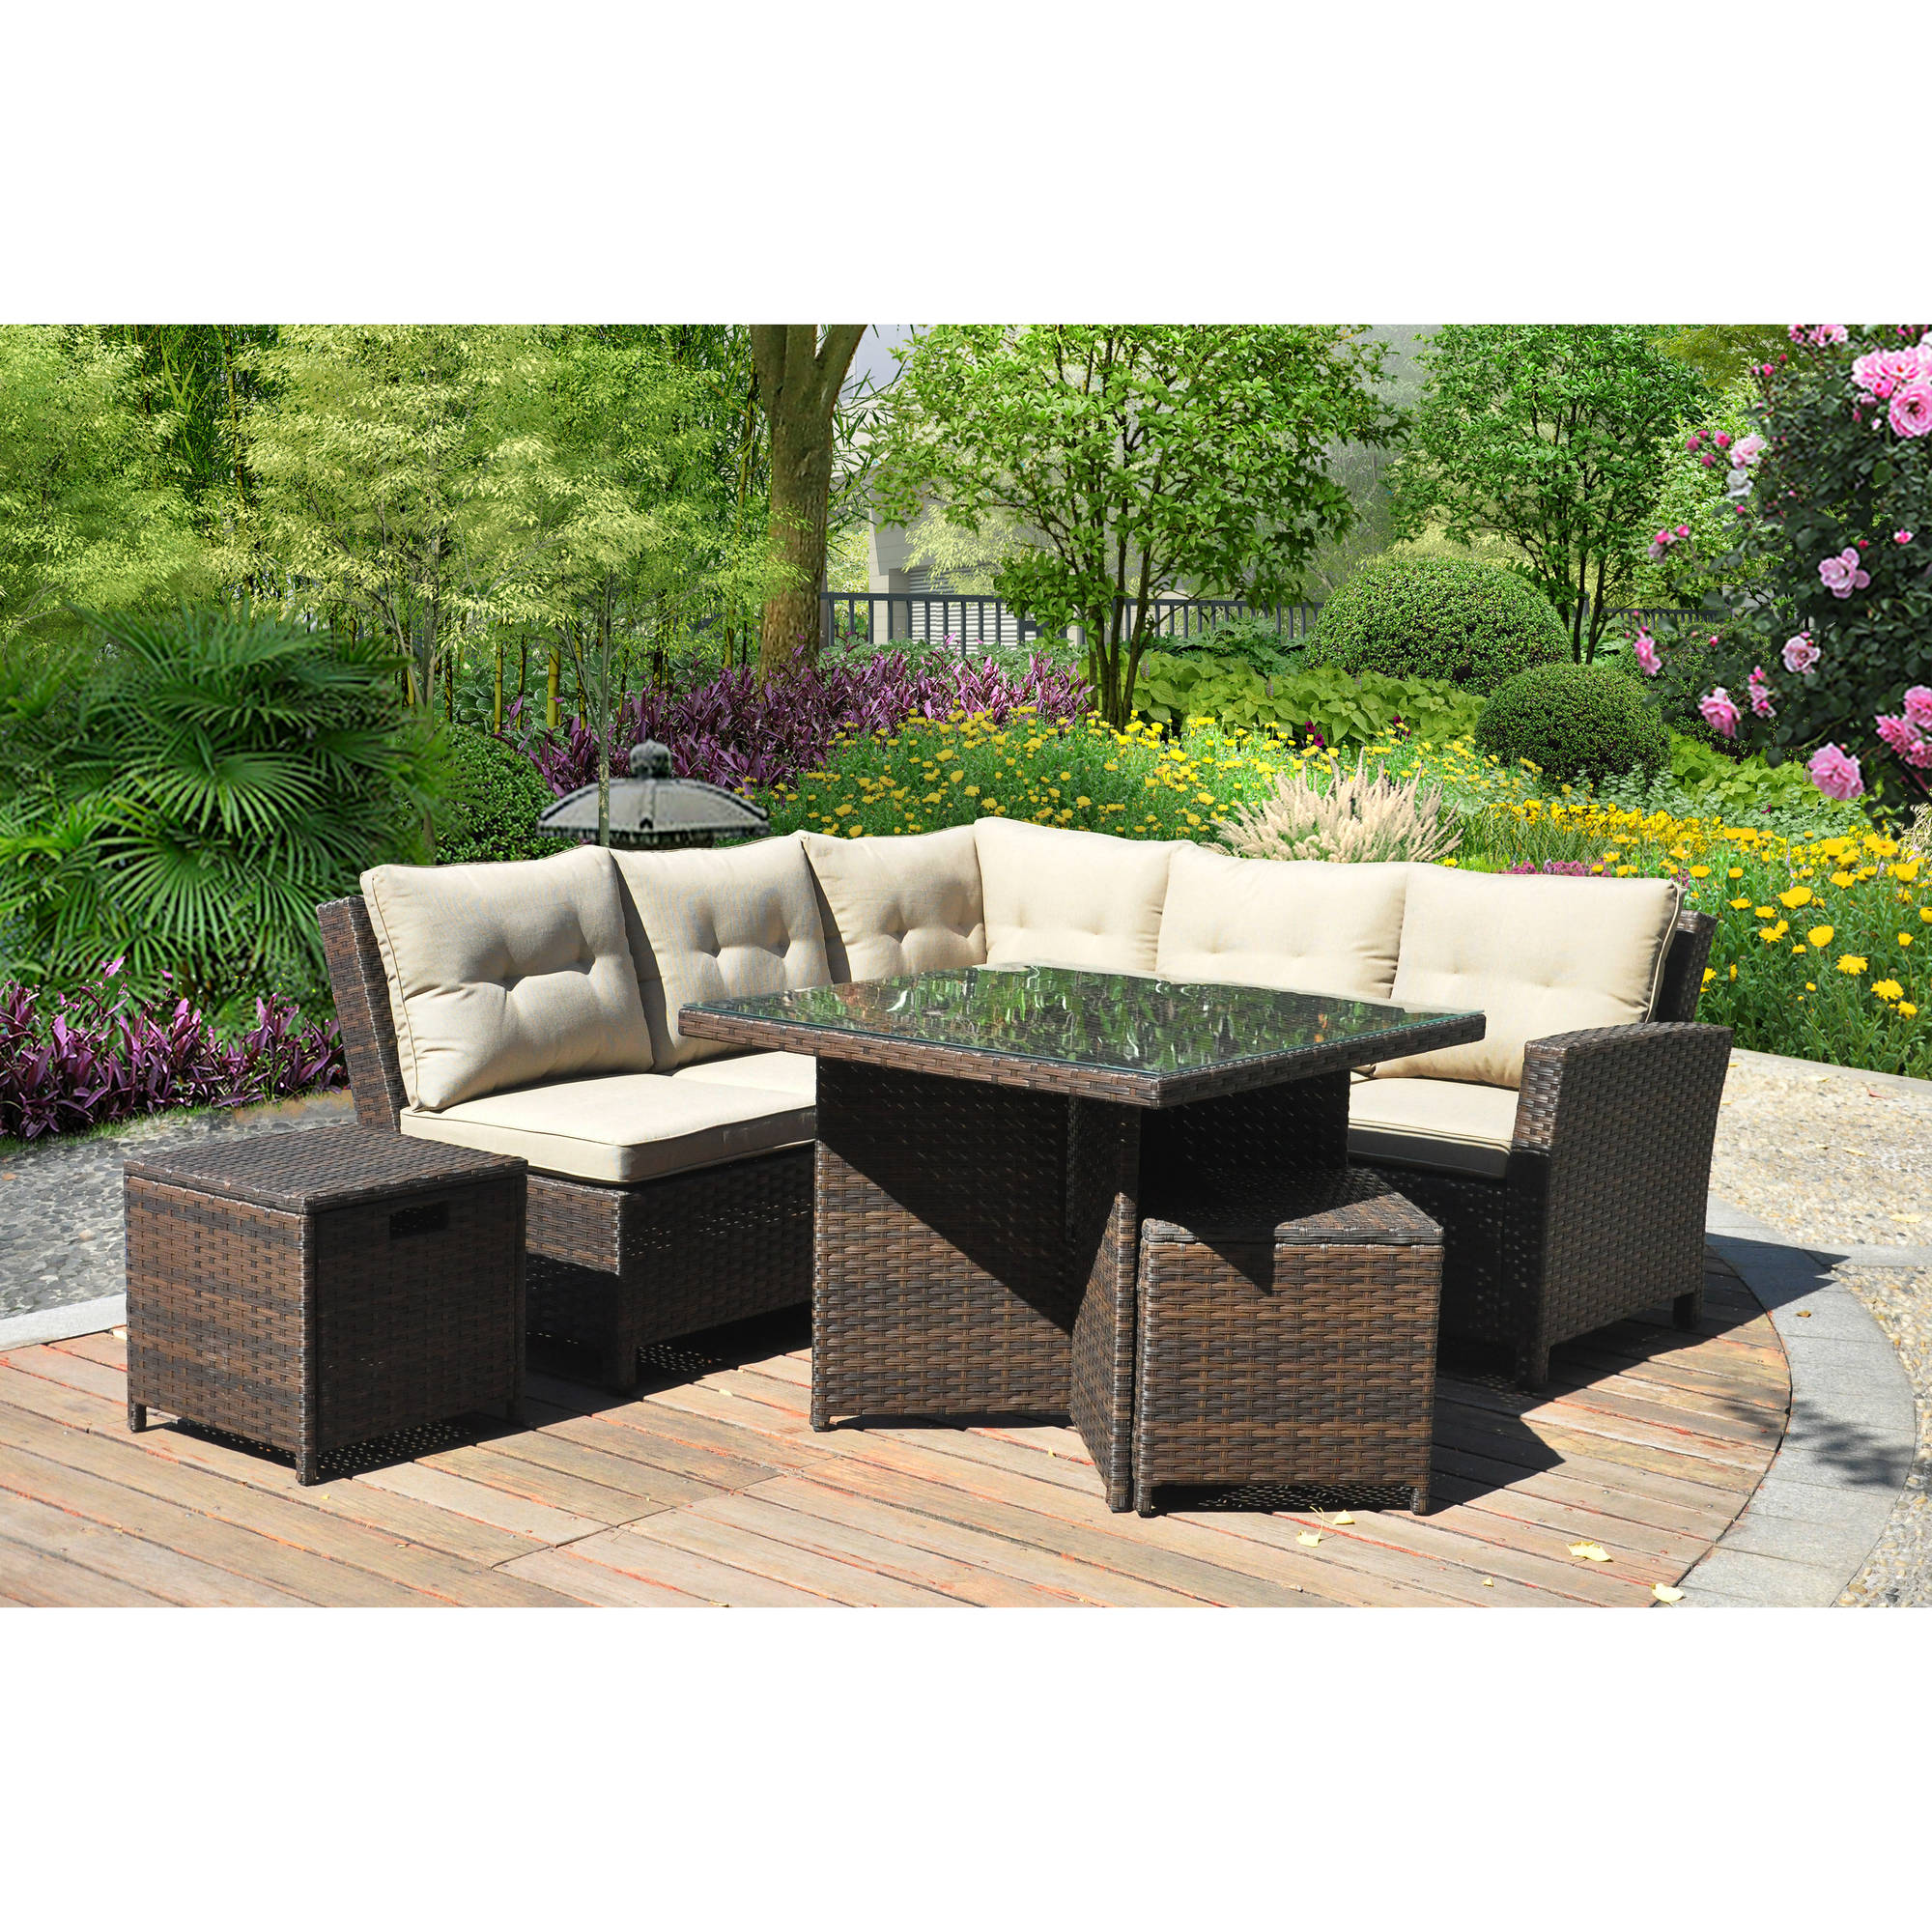 Best Mainstays Ragan Meadow II Piece Outdoor Sectional Sofa Seats Walmart